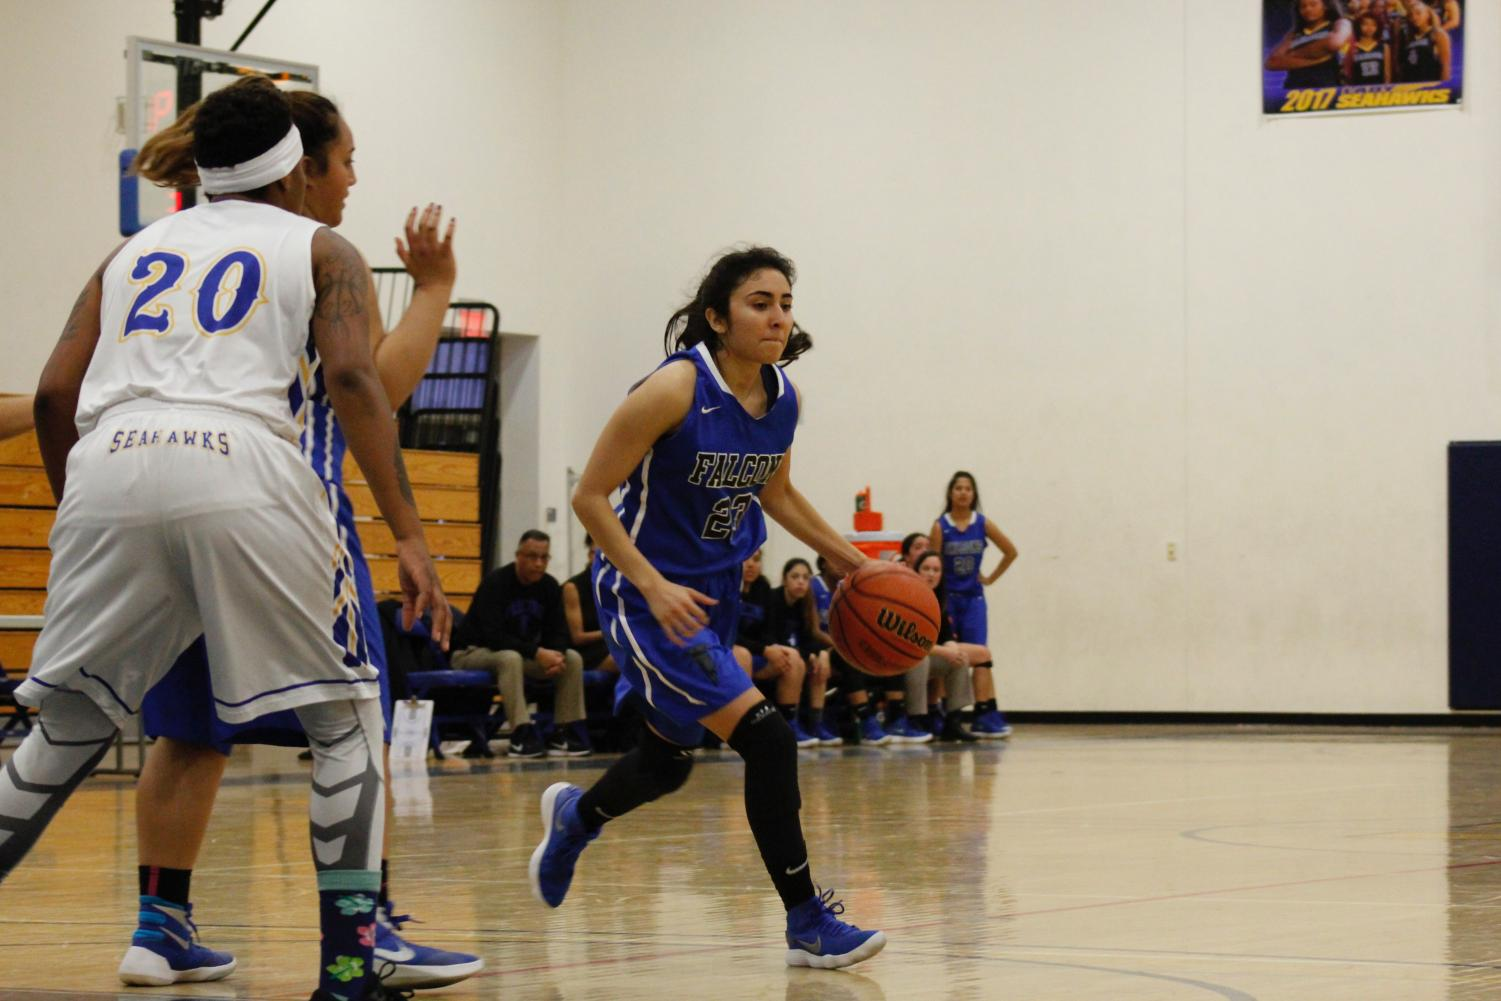 Freshman, Guard No. 23 Jessica Gomez dribbles the ball past the defender. Gomez aimed to try and open up the defense to get a open shot.